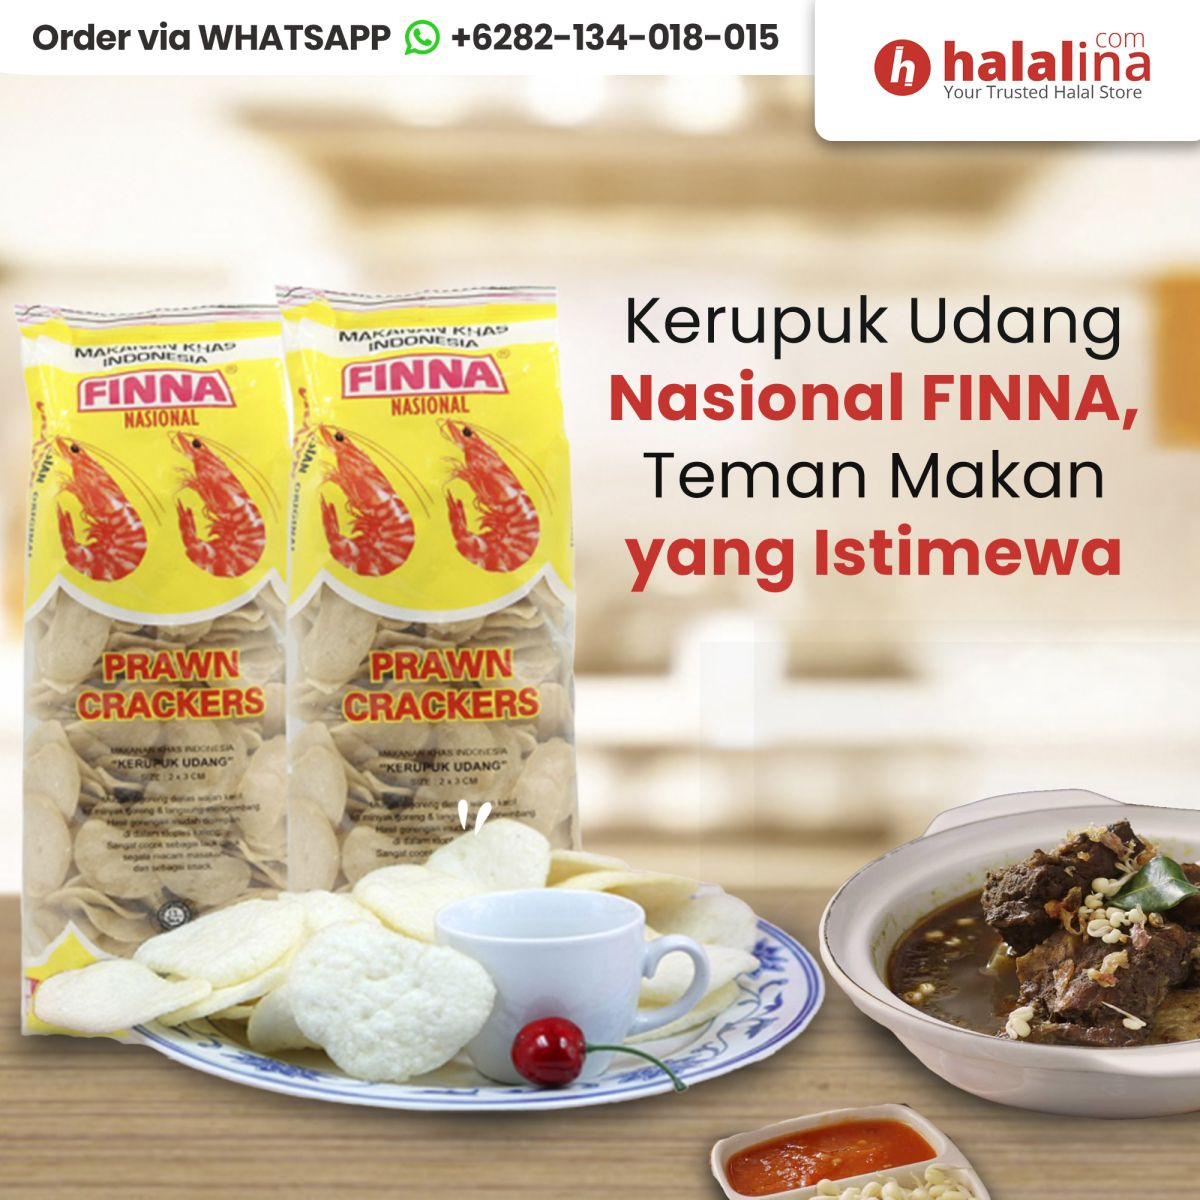 Halalina Phone 62 821 3401 8015 Halal Meat Near Me Japan In 2020 Halal Recipes Halal Food